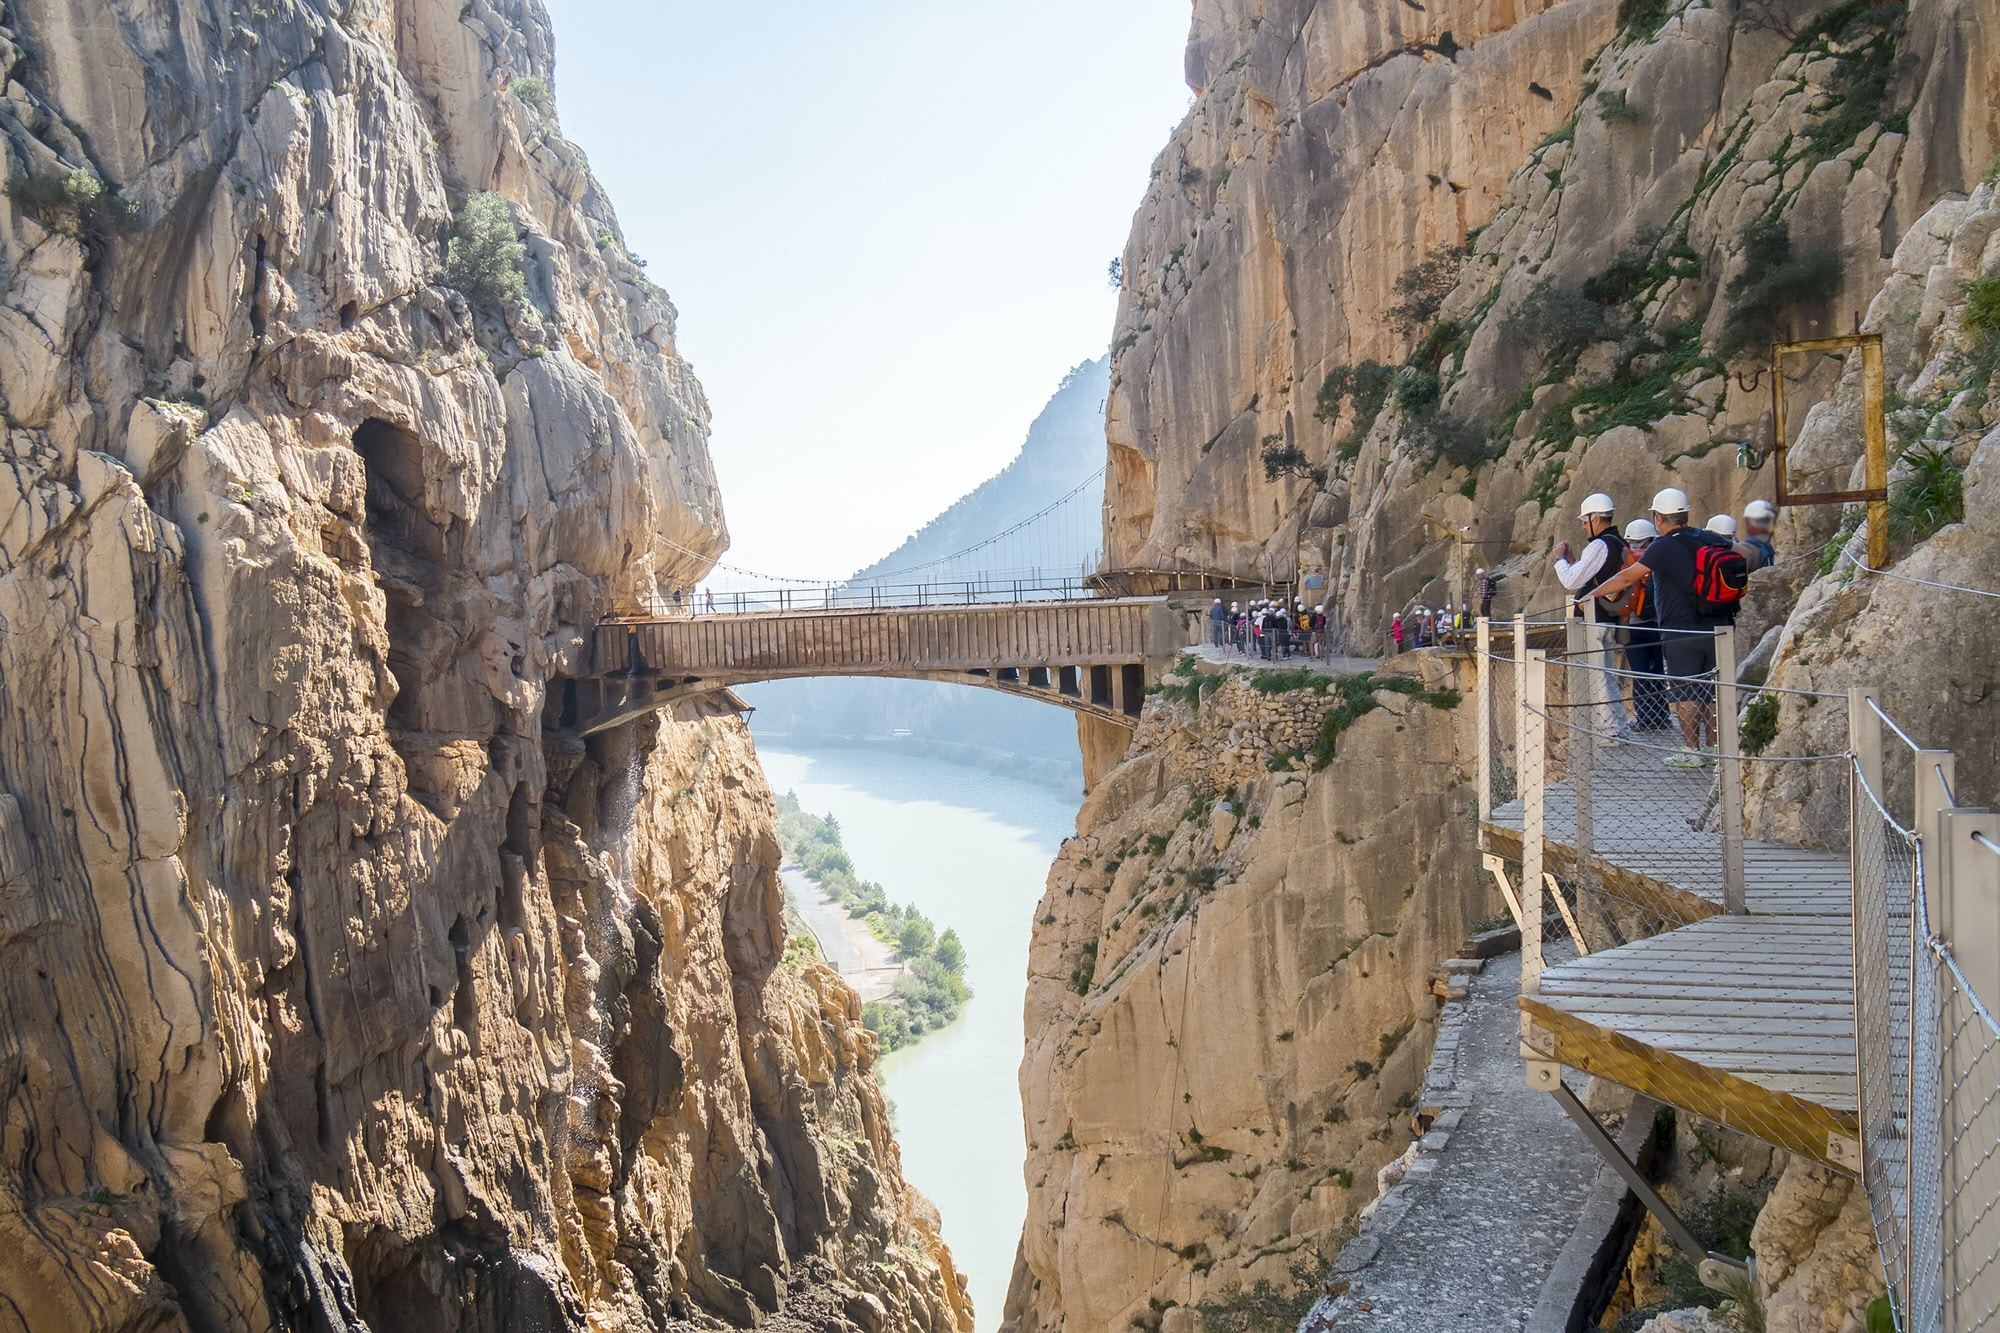 A section of the Caminito del Rey, a narrow wooden walkway protruding from a sheer rock face